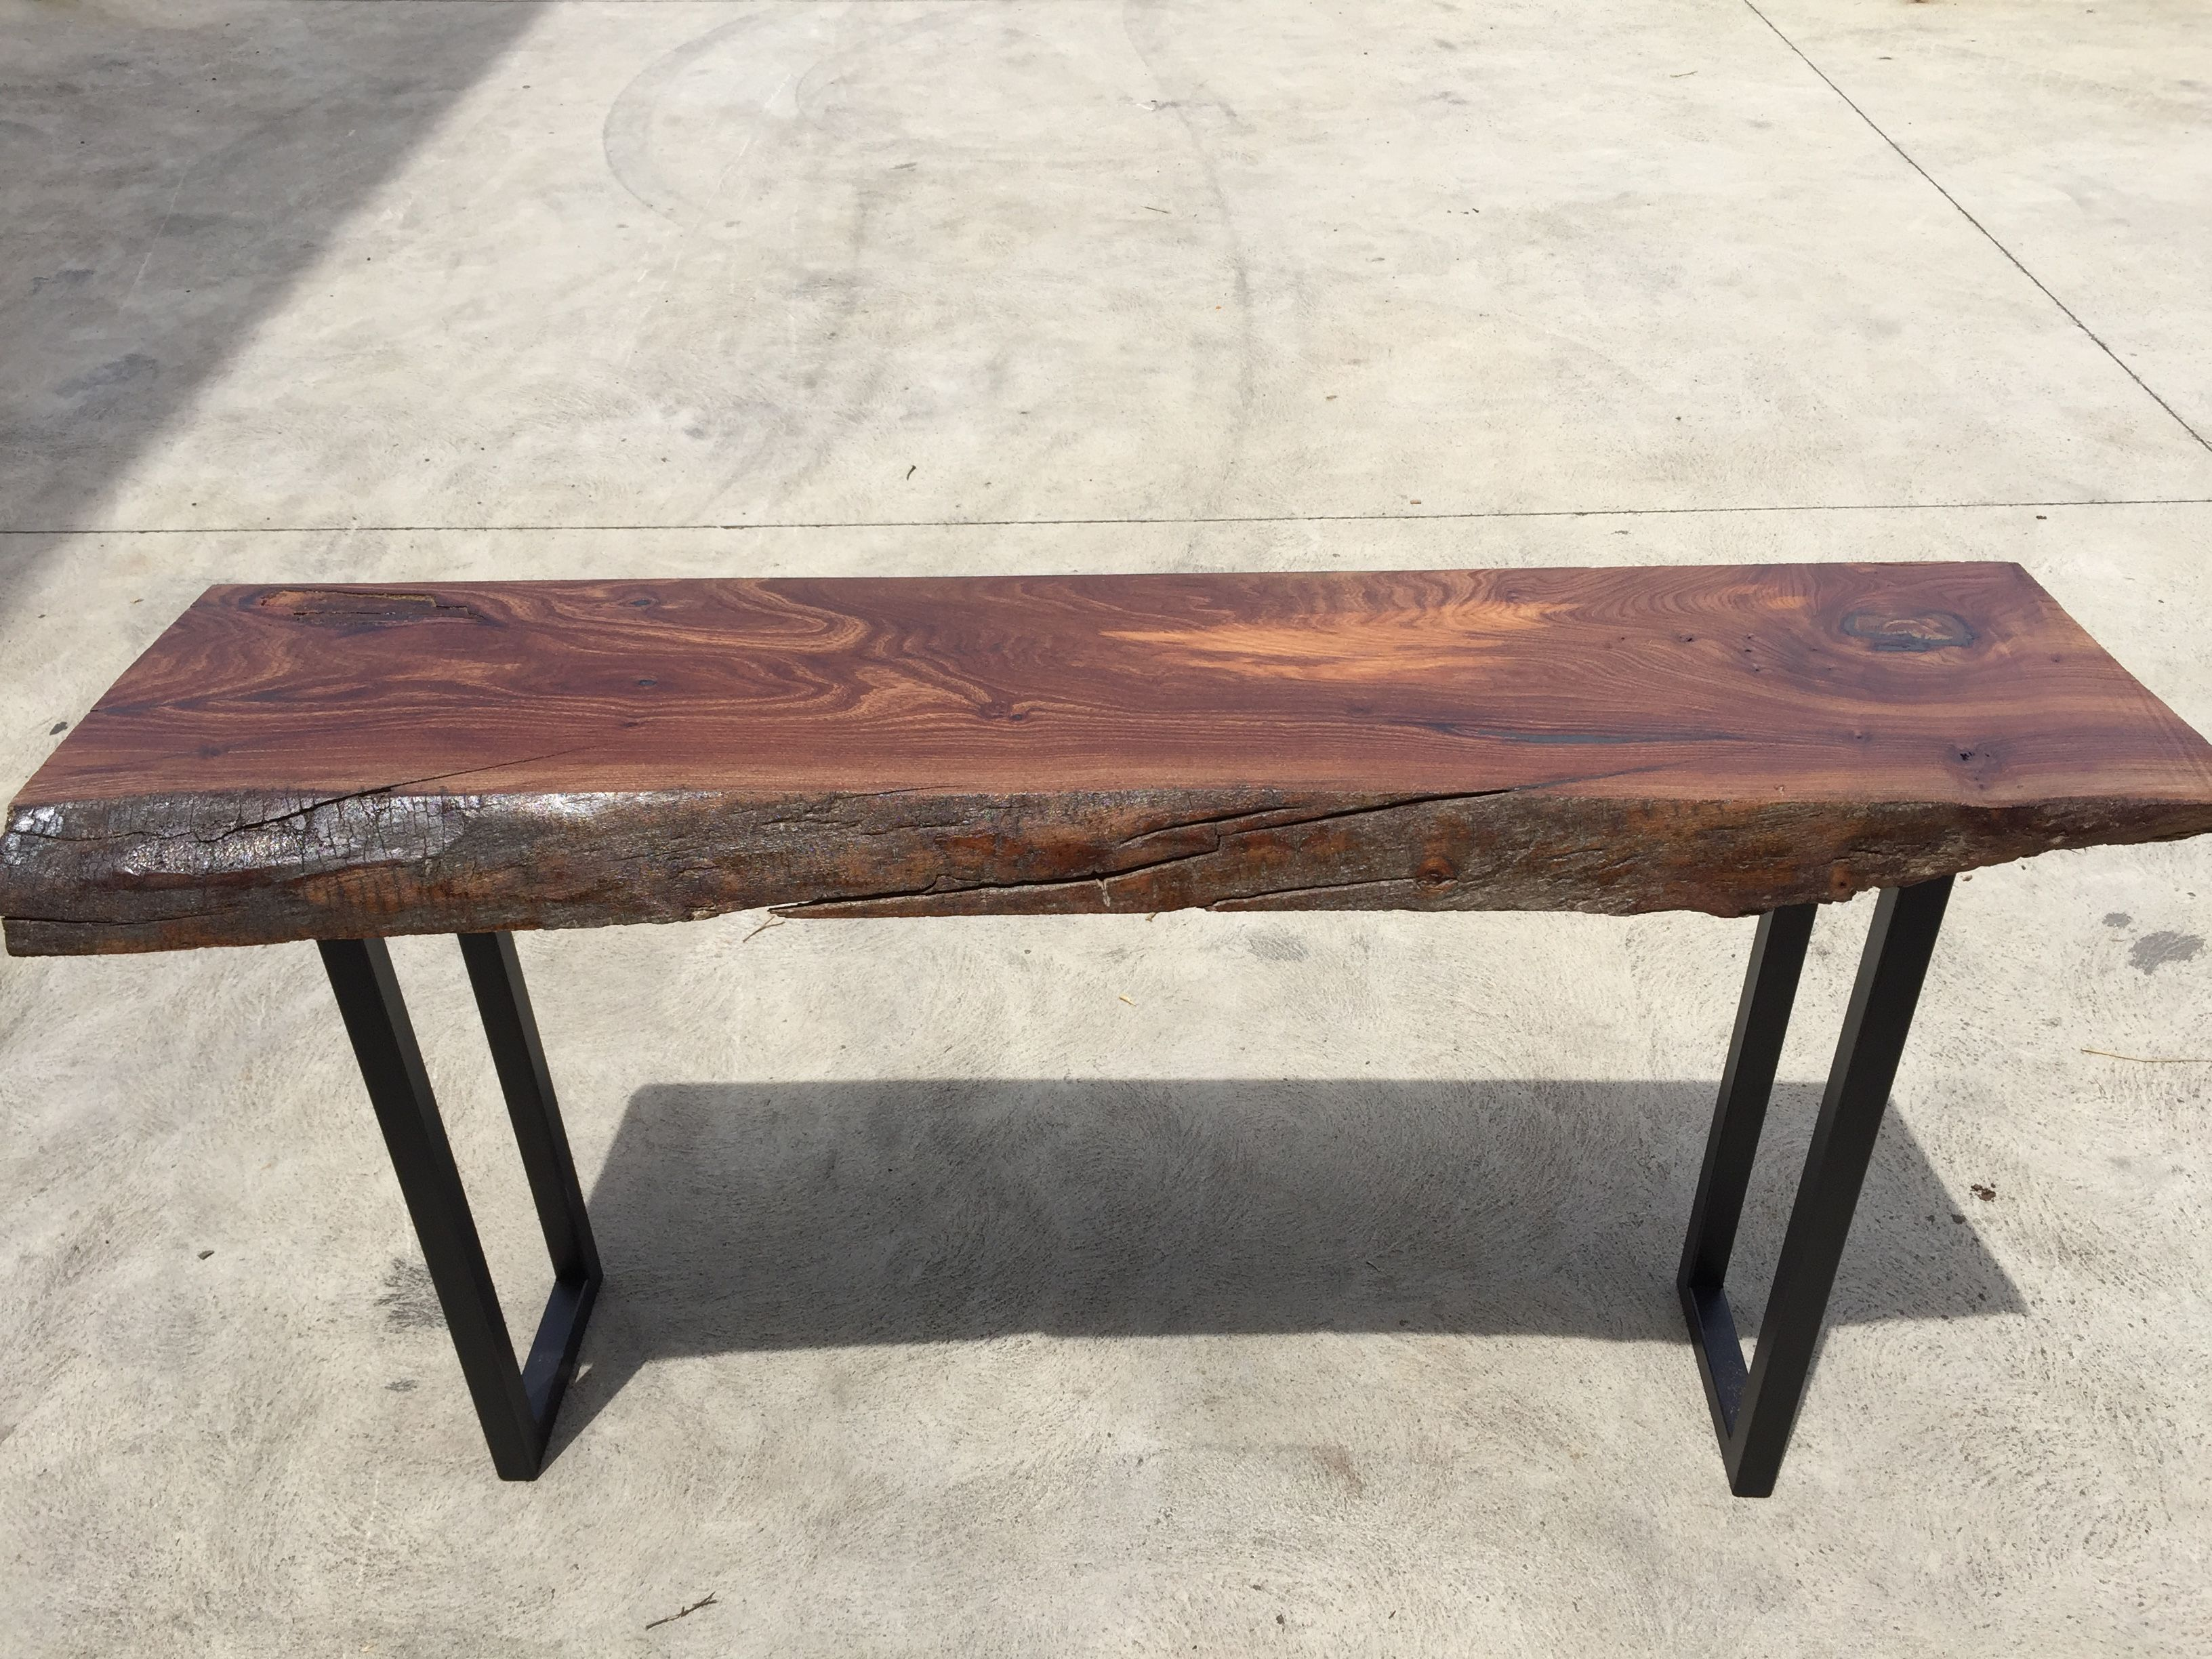 Recycled timber slab industrial hall table console $395 made by